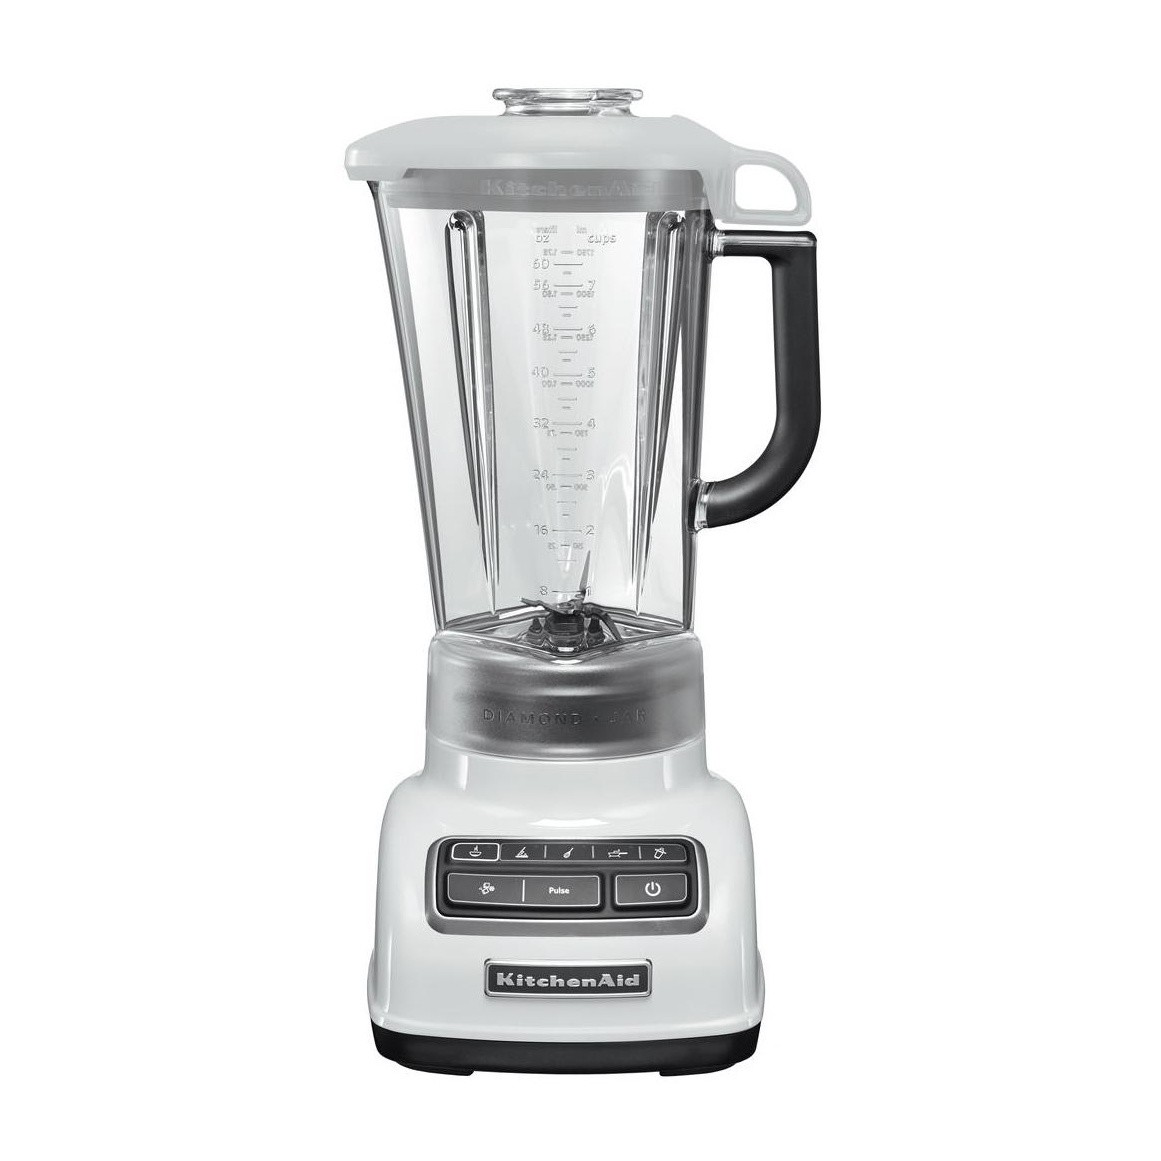 kitchenaid classic 5ksb1585wh blender kitchenaid. Black Bedroom Furniture Sets. Home Design Ideas